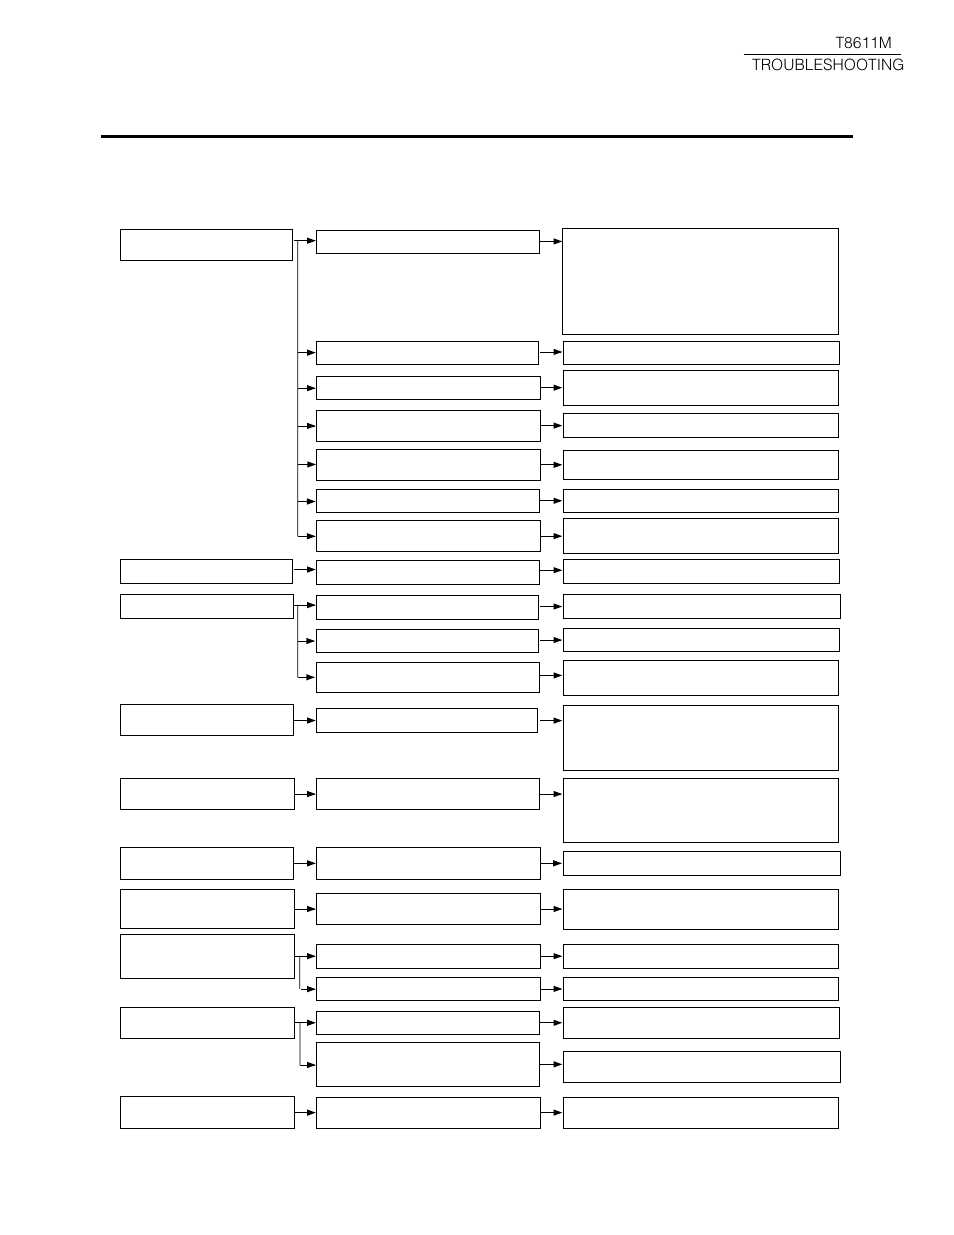 hight resolution of troubleshooting honeywell chronotherm iii t8611m user manual page 29 32